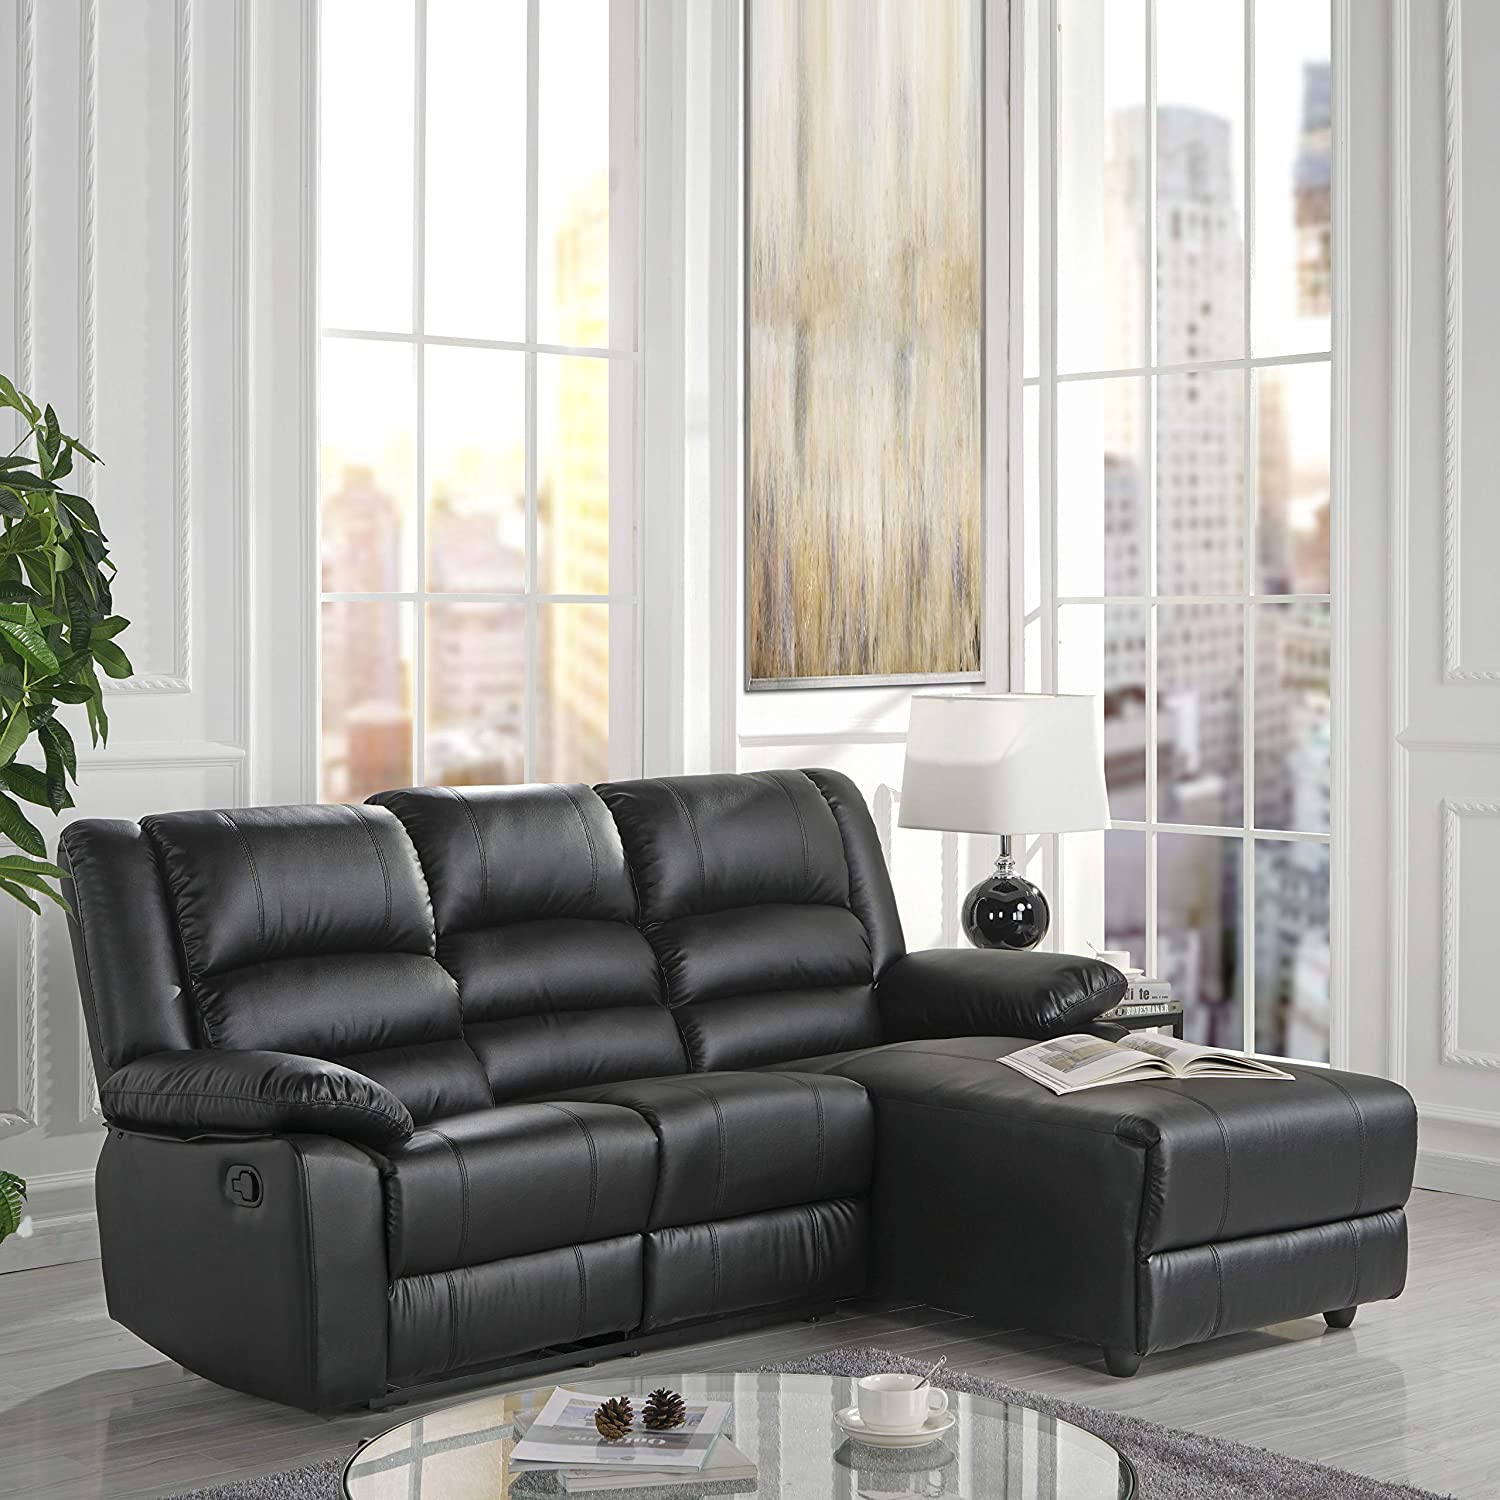 Amazon.com: Case Andrea Milano Bonded Leather Sectional Sofa with ...